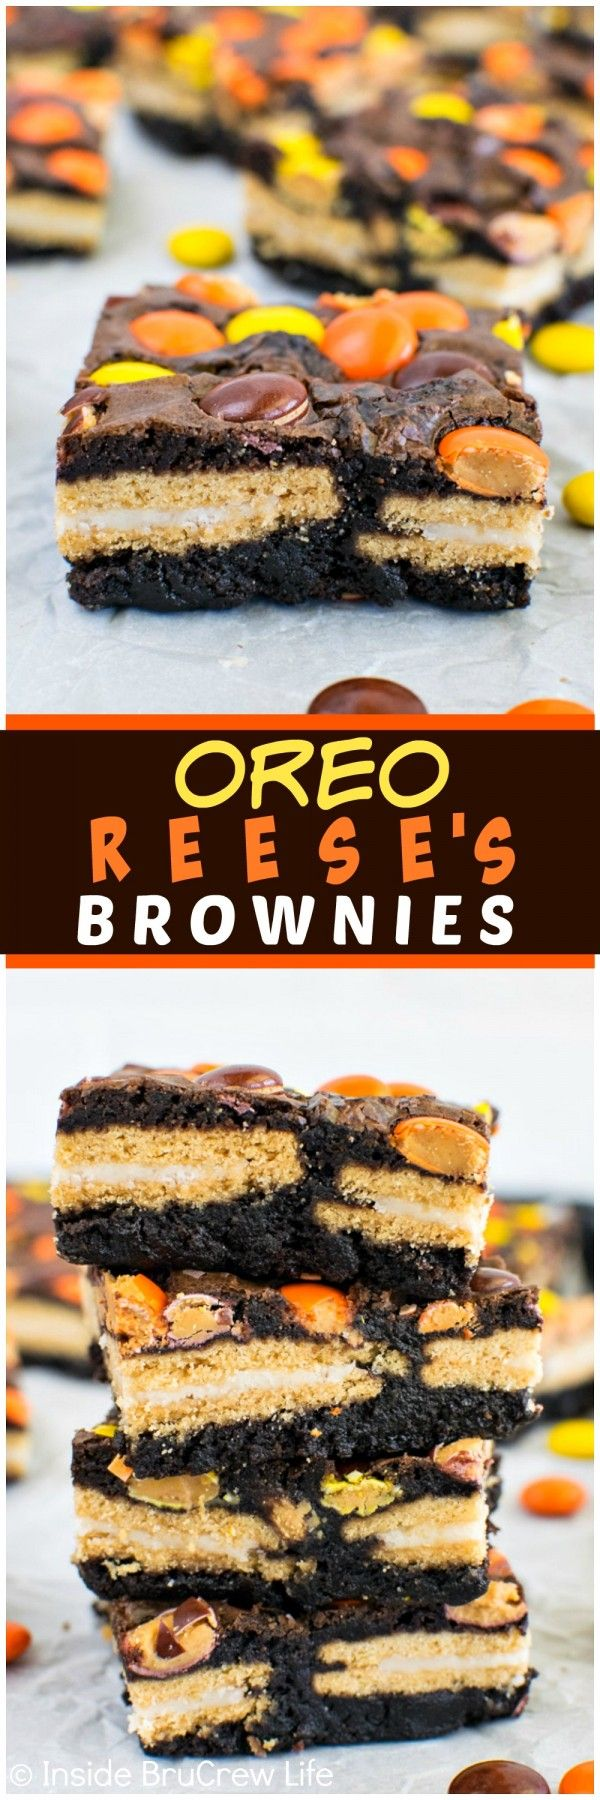 Oreo Reese's Brownies - these easy brownies are loaded with cookies and candies! Perfect dessert recipe!